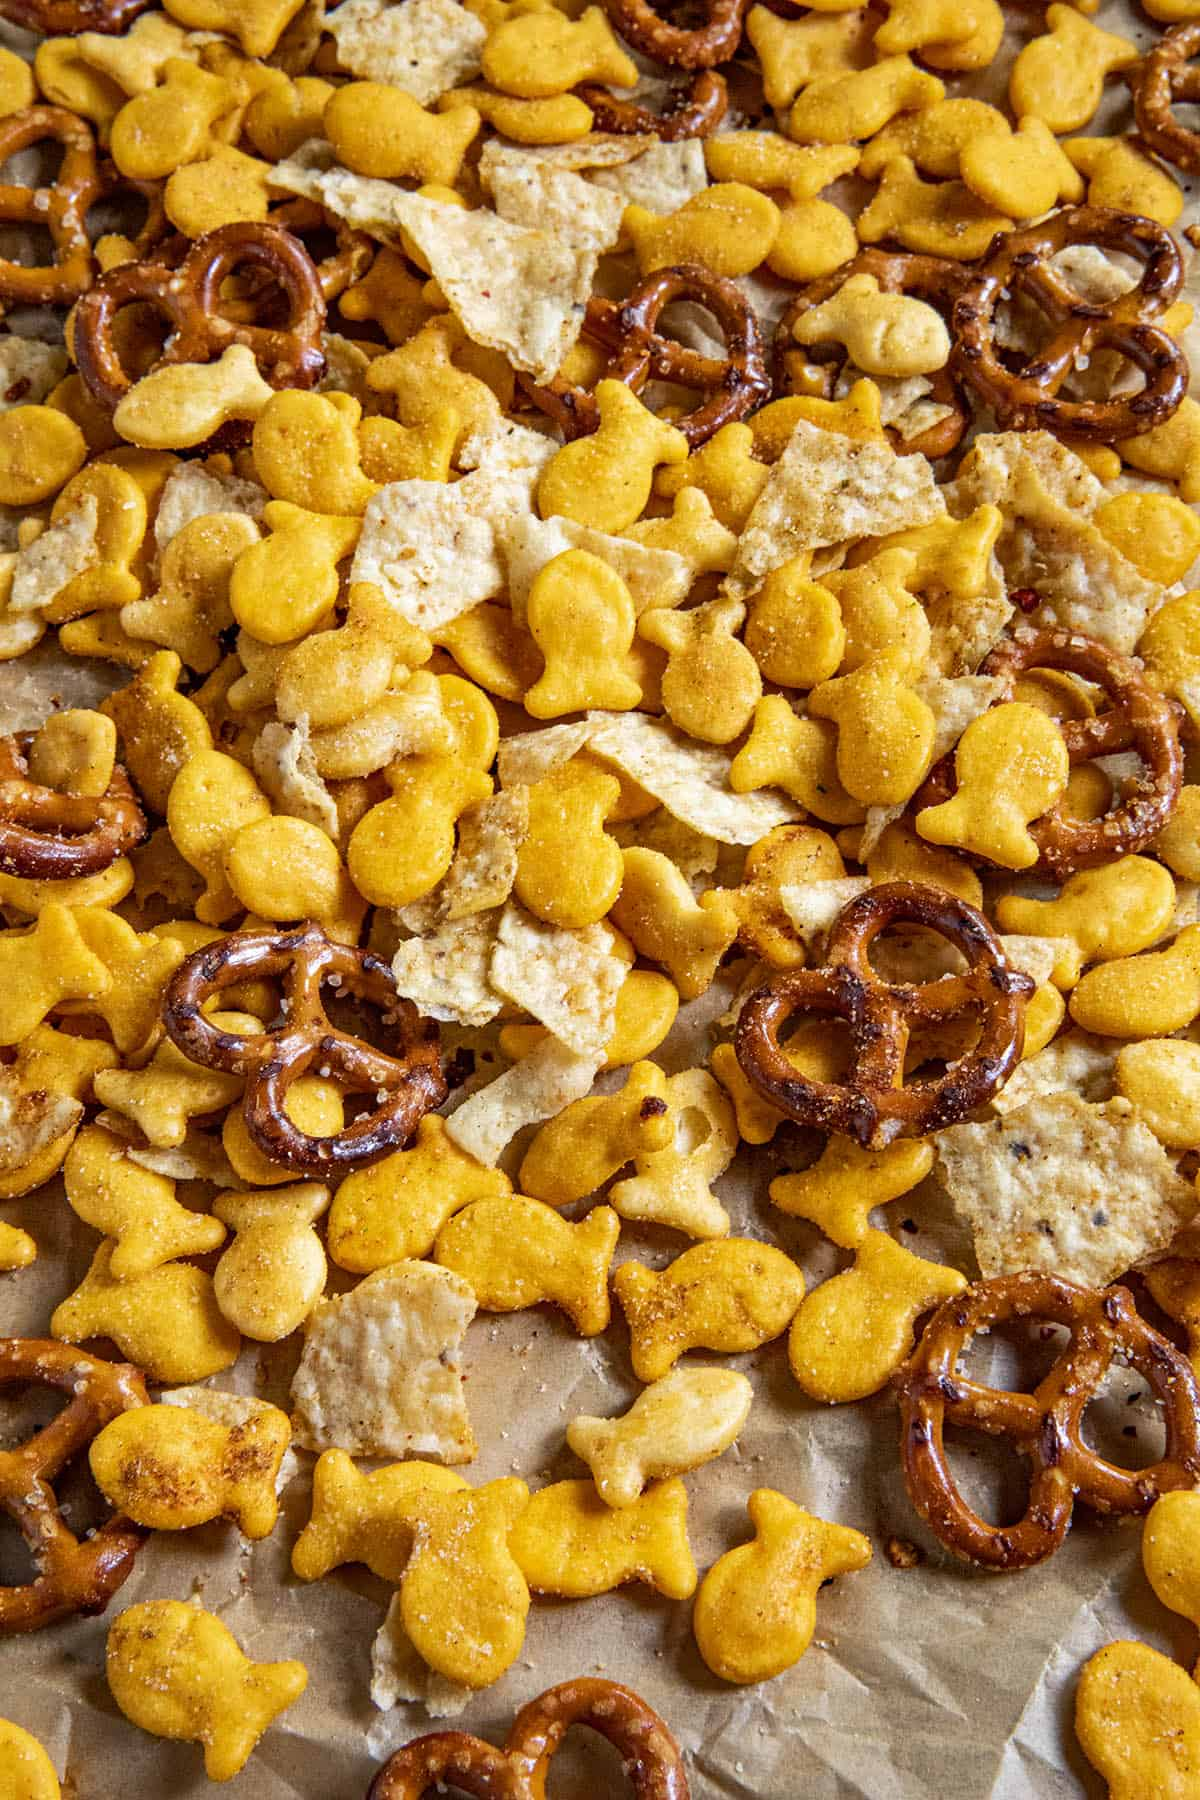 Lots of Homemade Spicy Snack Mix on a serving tray